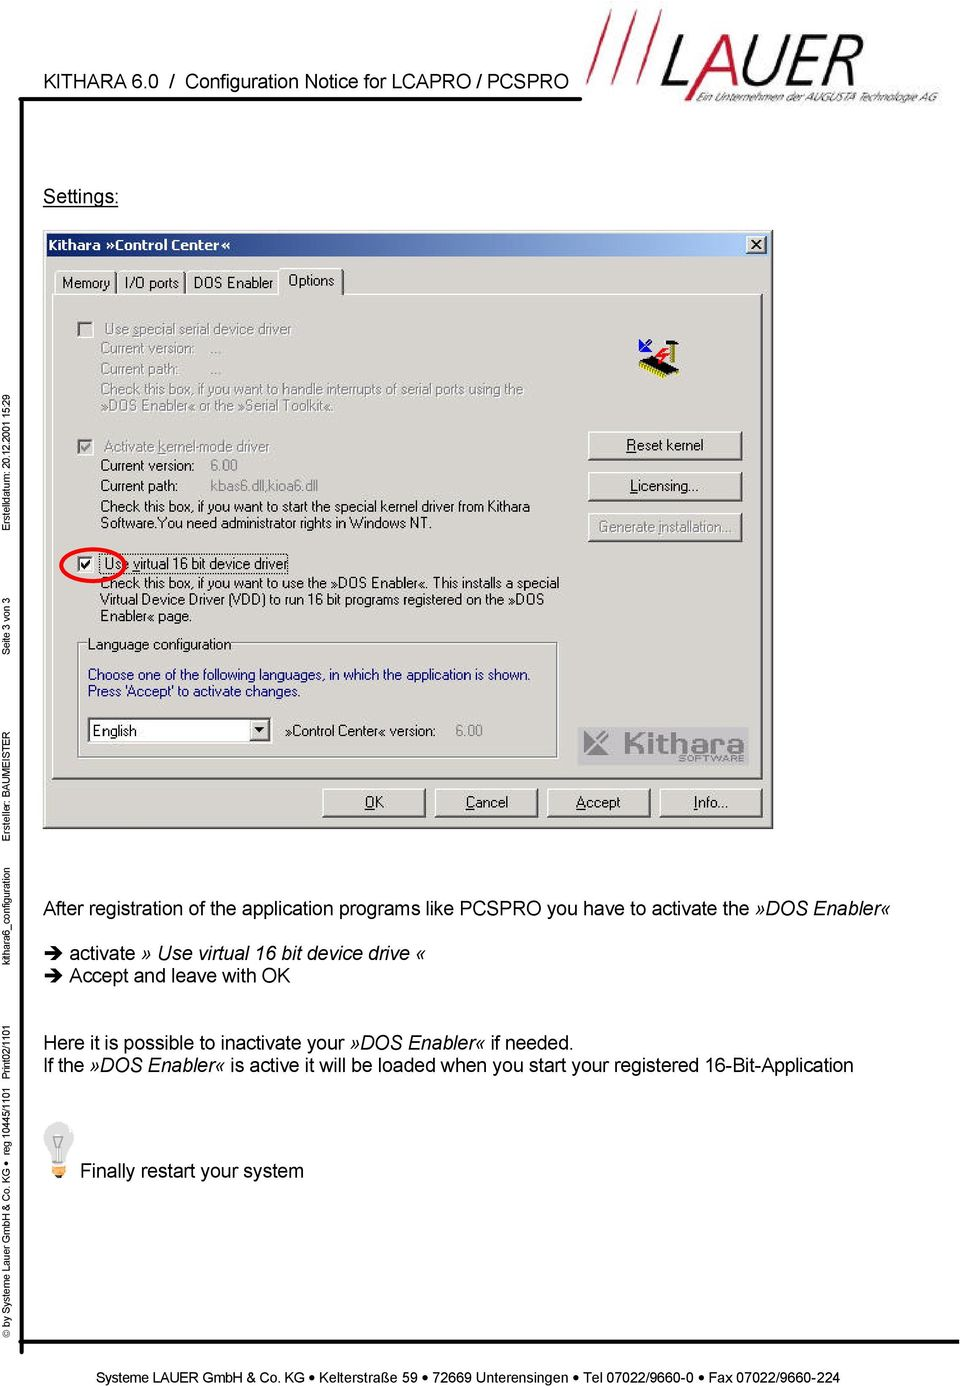 2001 15:29 After registration of the application programs like PCSPRO you have to activate the»dos Enabler«activate» Use